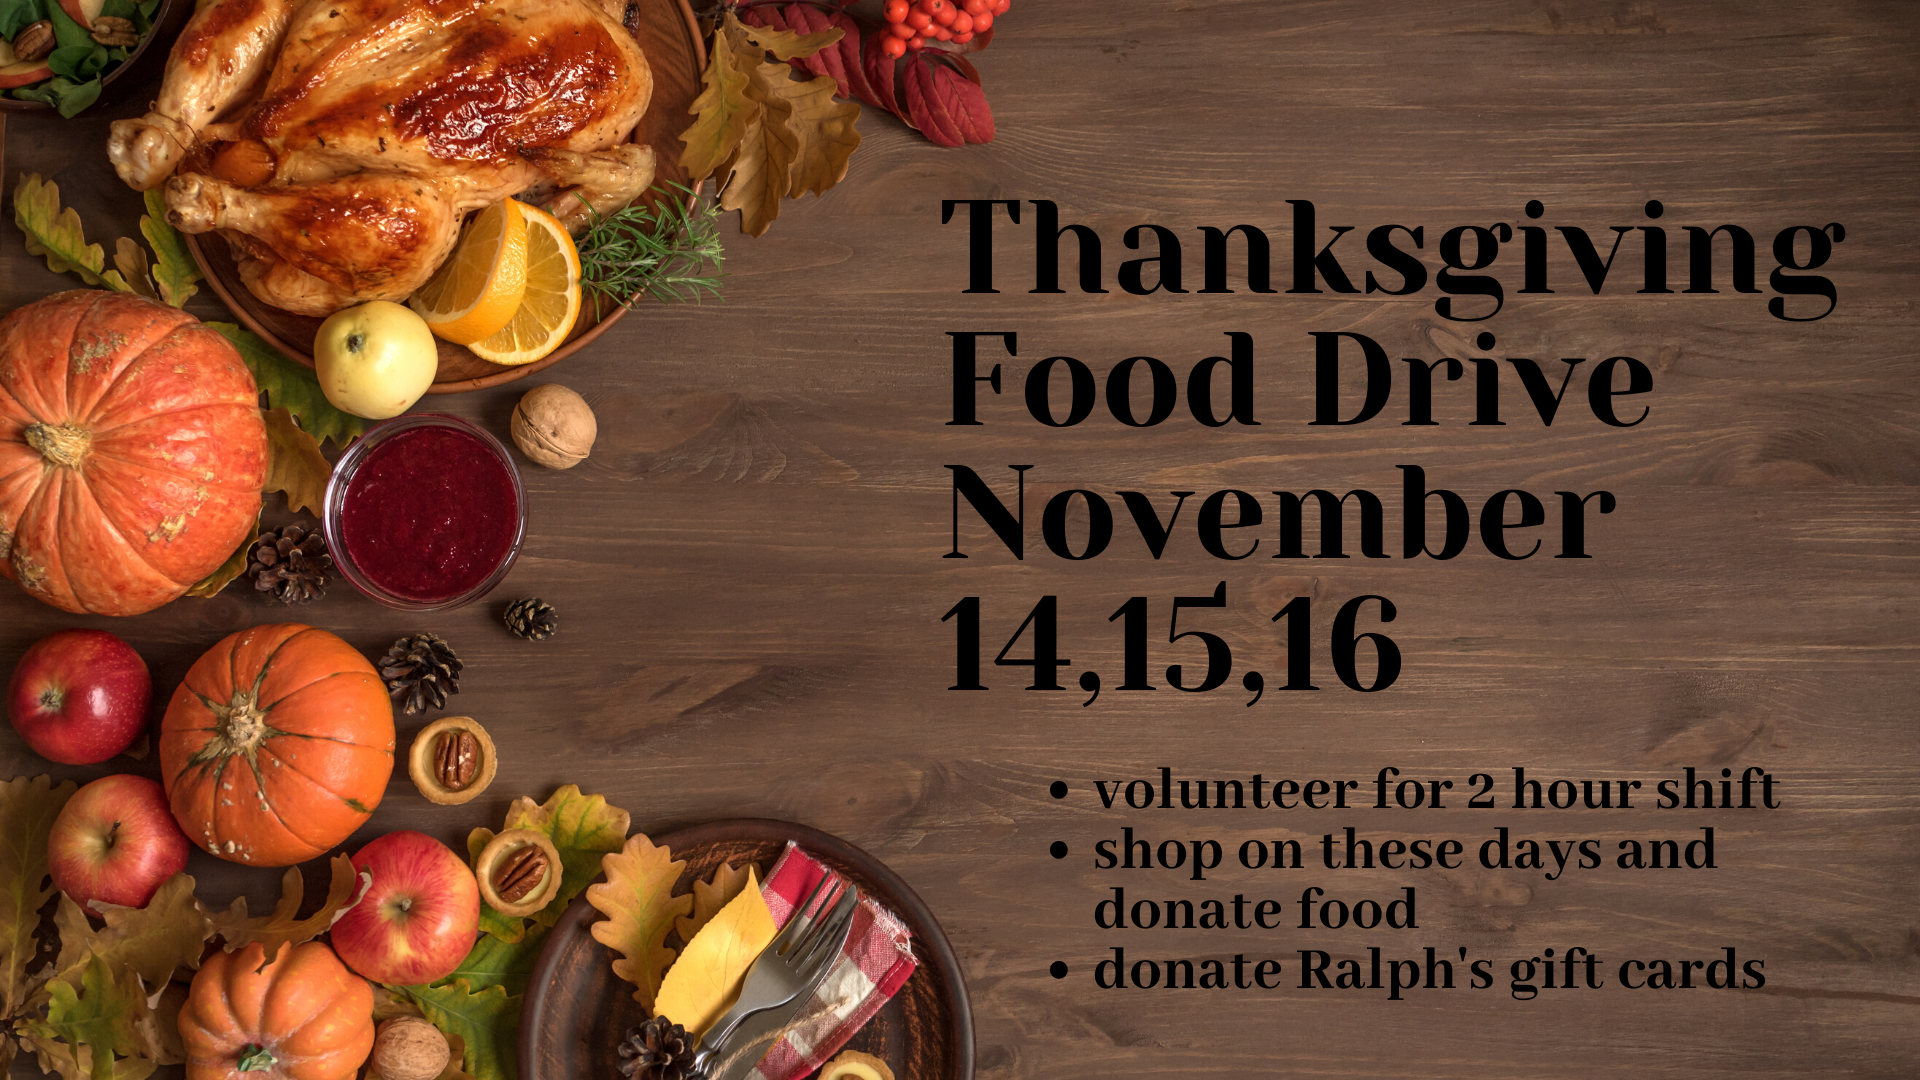 Thanksgiving Food Drive November 14,15,16 (2) image